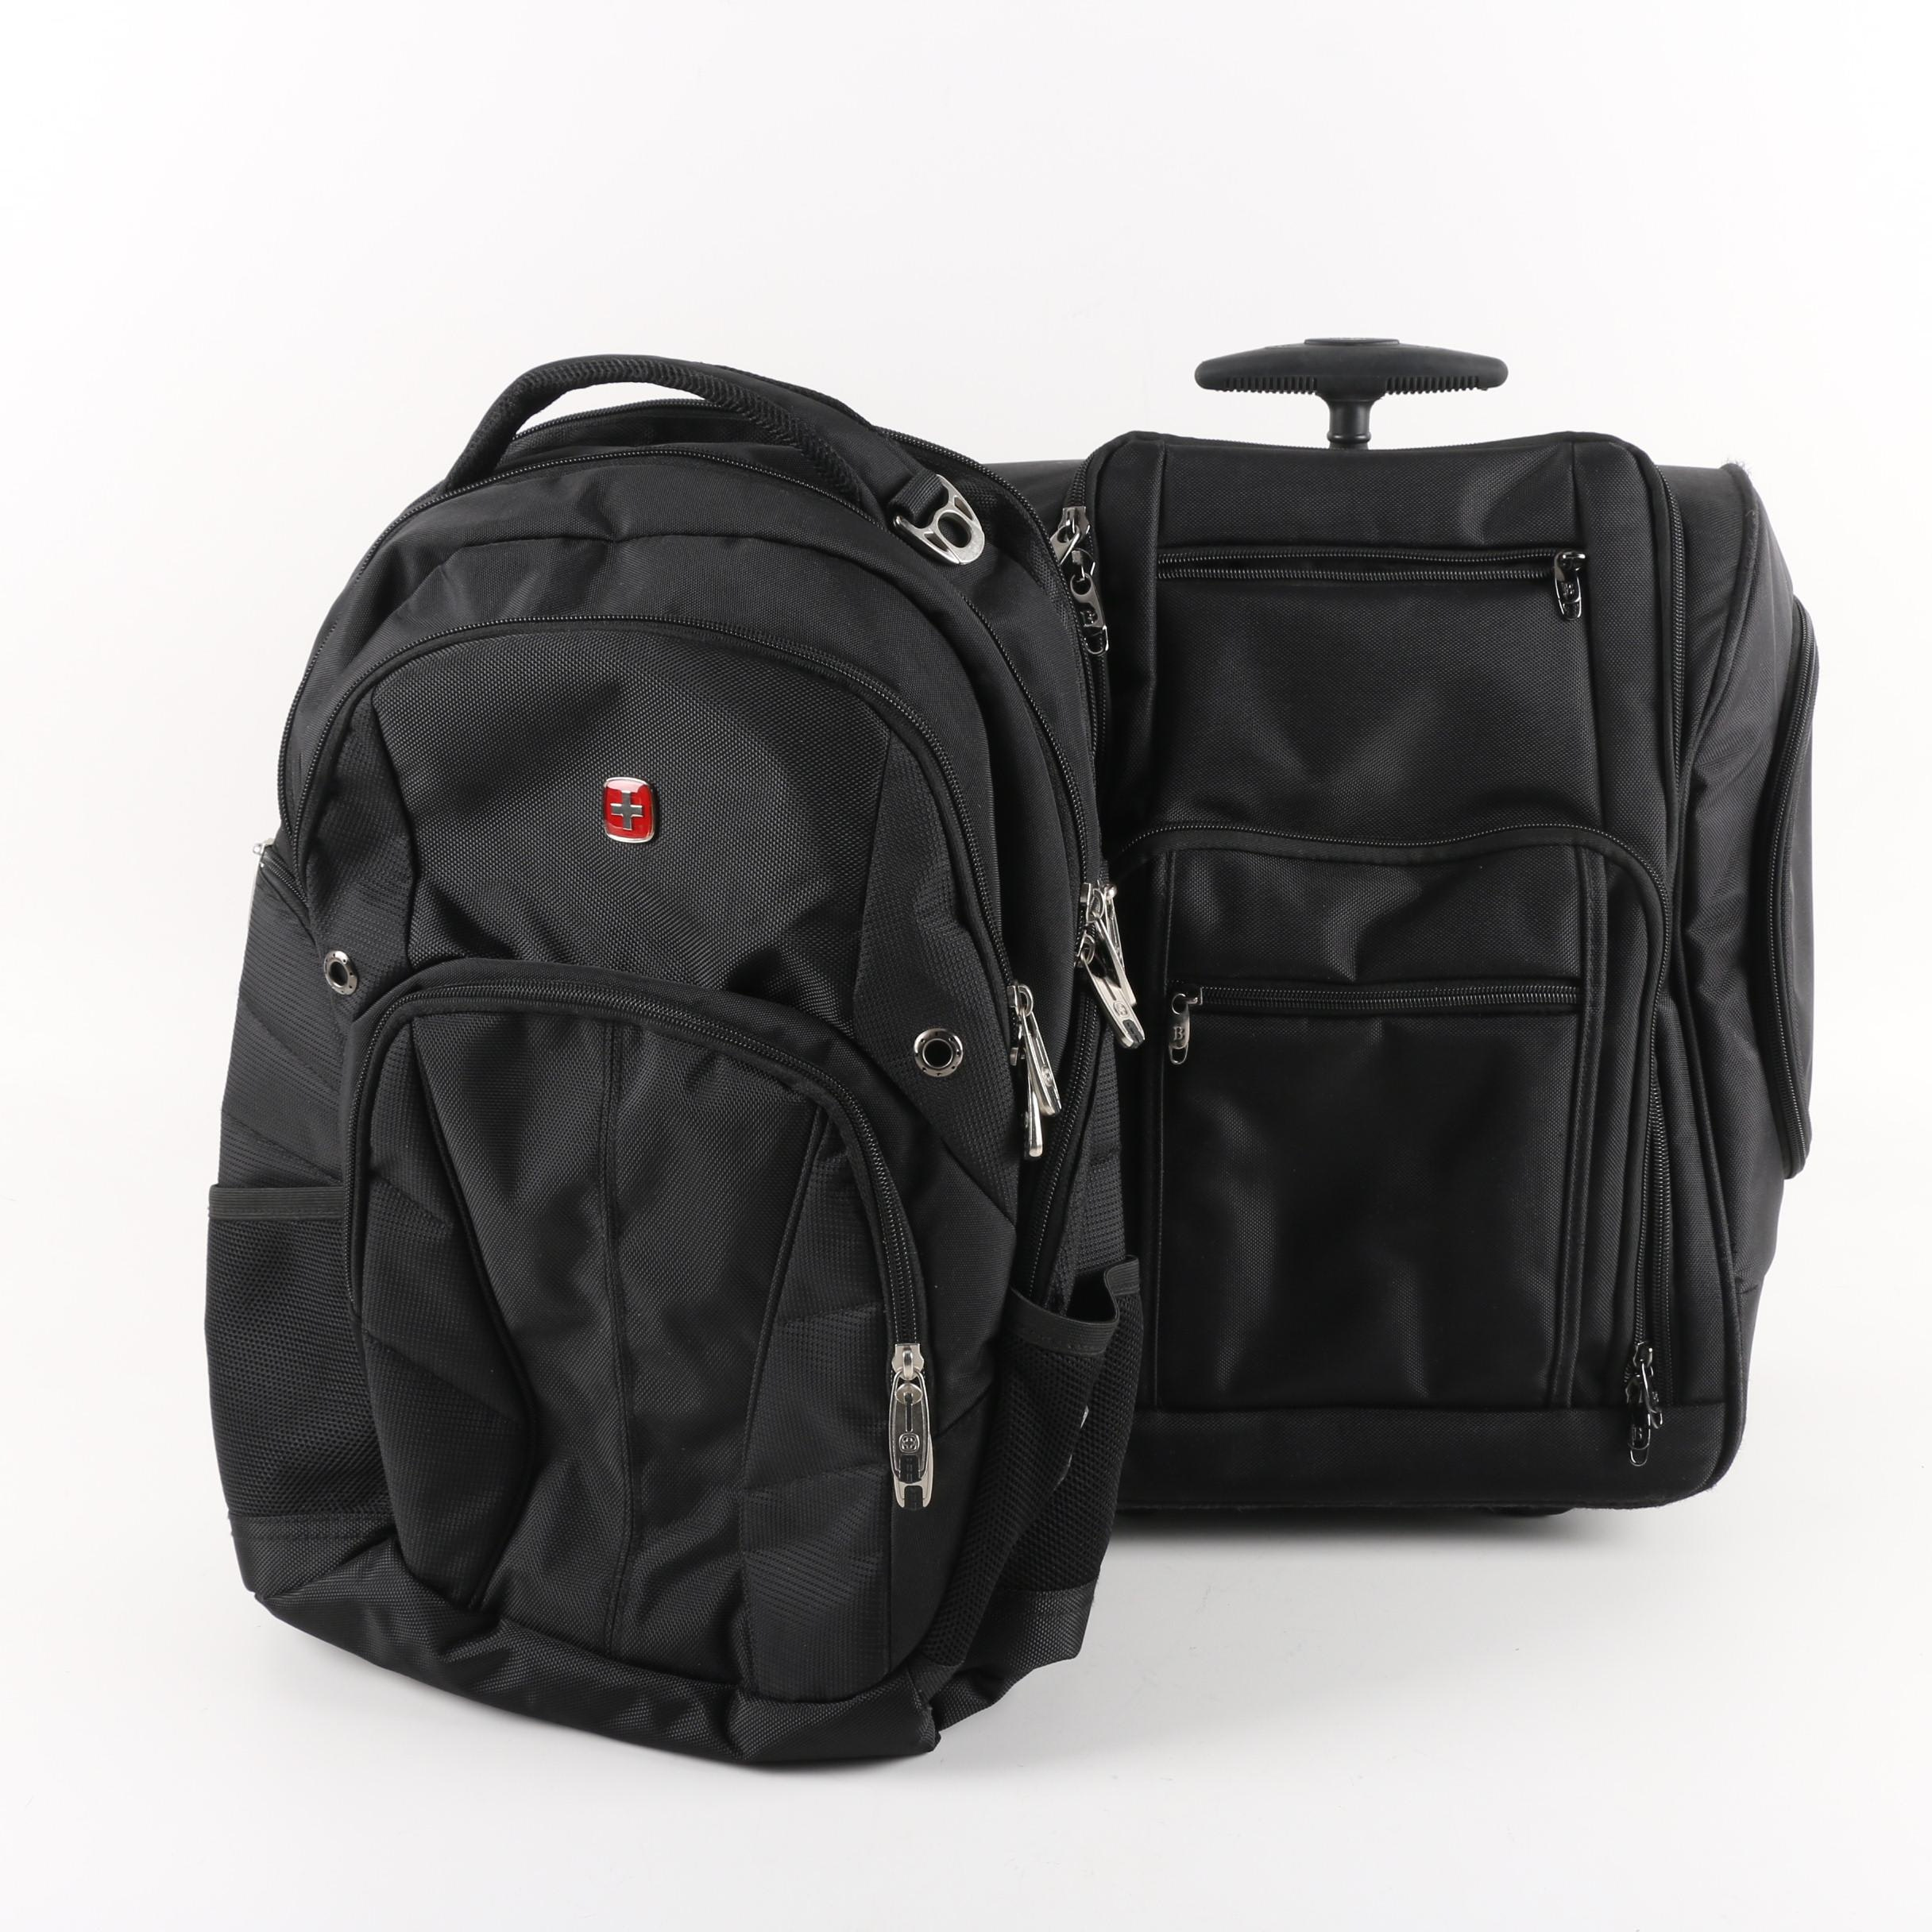 Brookstone Rolling Travel Bag and Swiss Gear Backpack